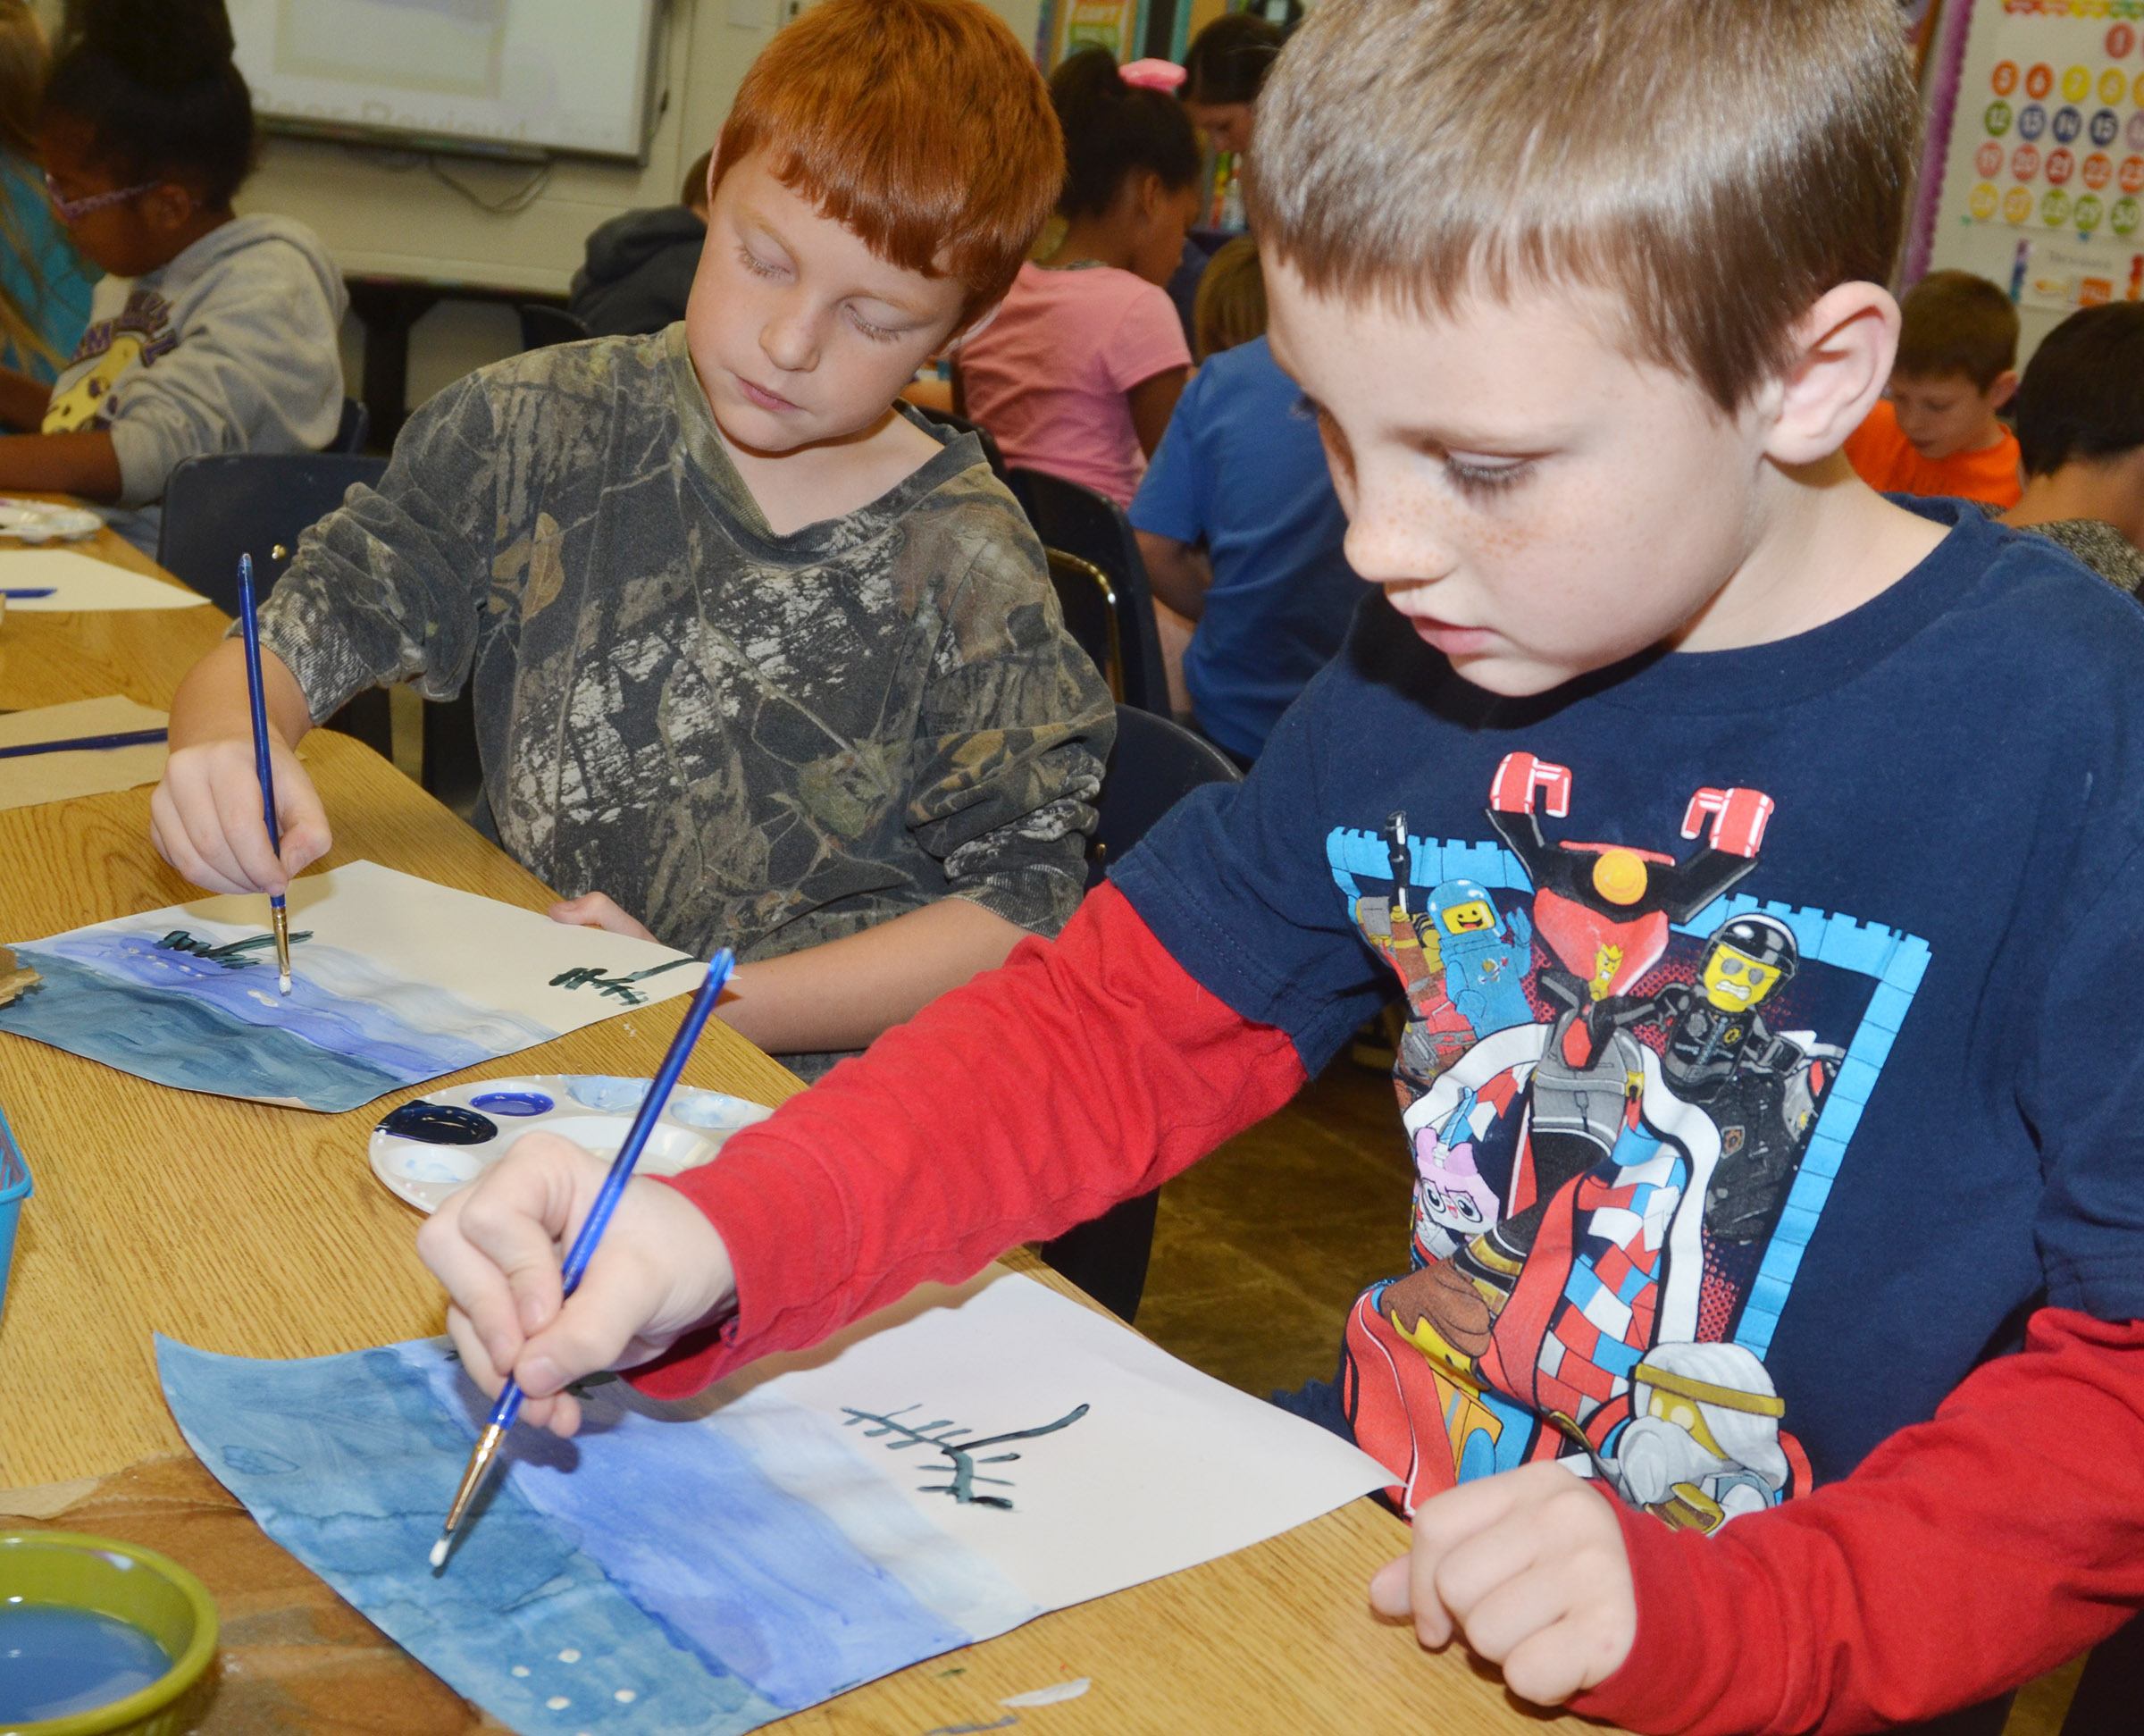 CES second-graders Carter Wethington, at left, and James Brunner paint.